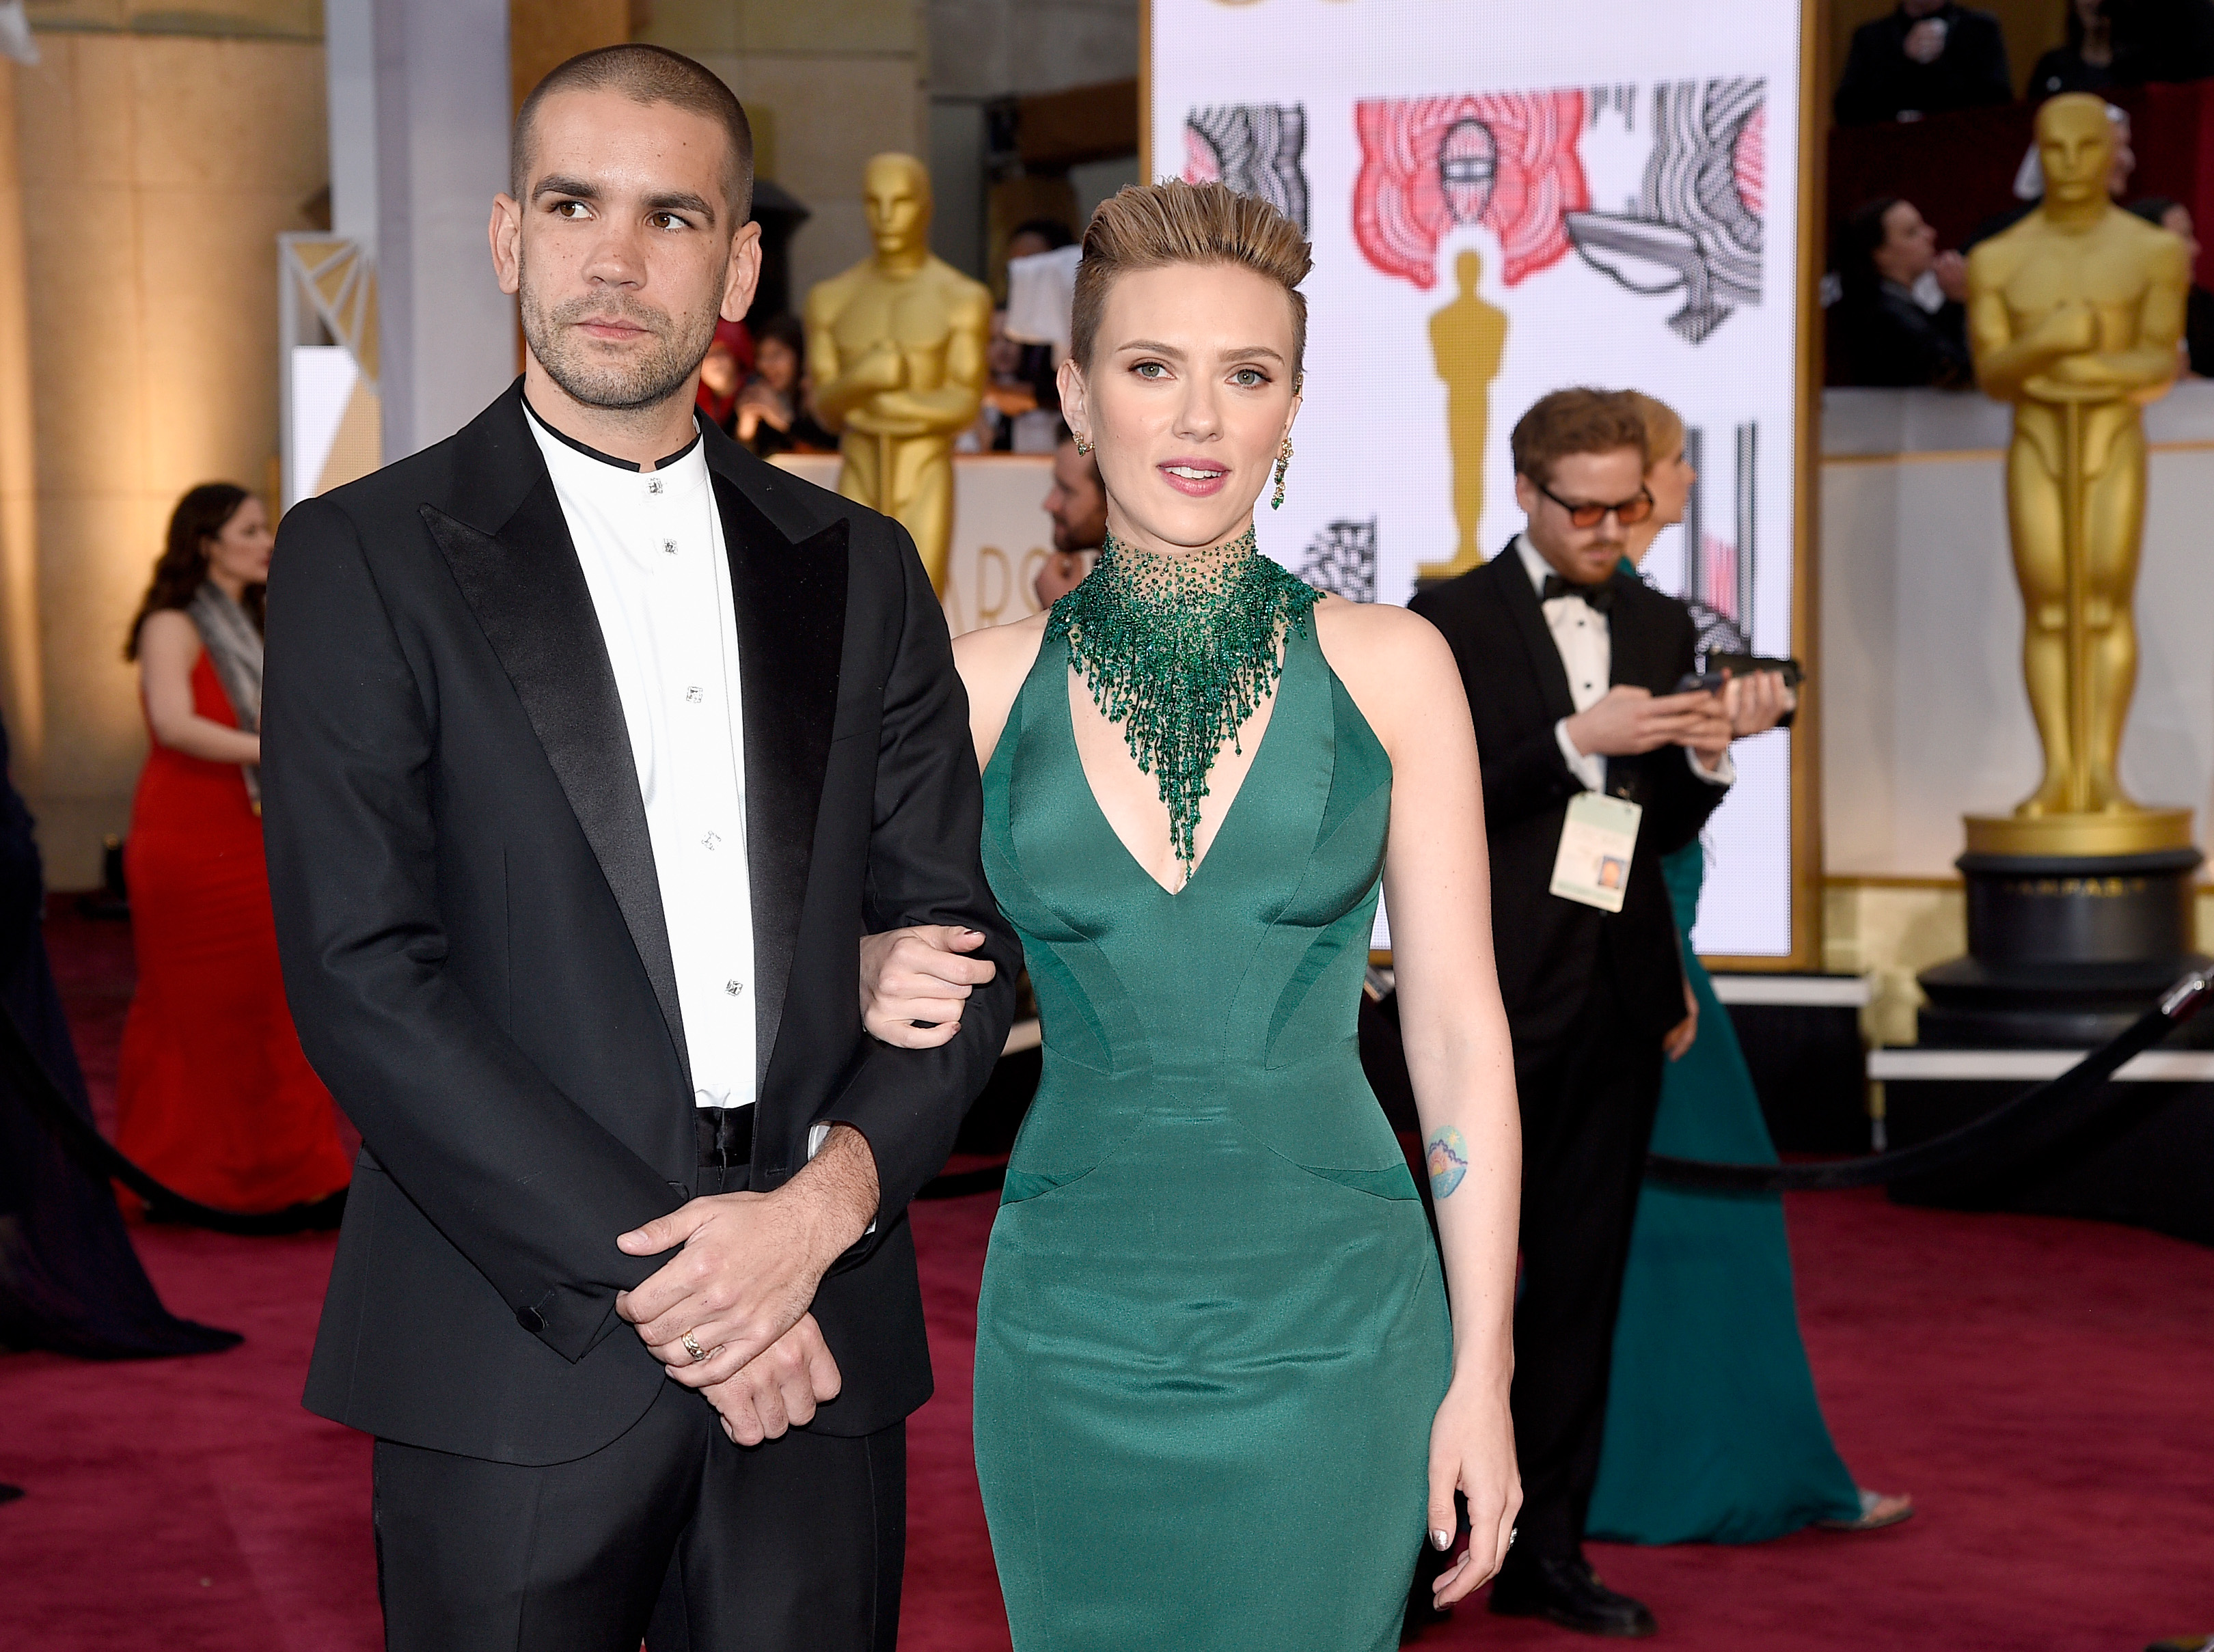 Actress Scarlett Johansson (R) and Romain Dauriac attend the 87th Annual Academy Awards at Hollywood & Highland Center on February 22, 2015 in Hollywood, California.